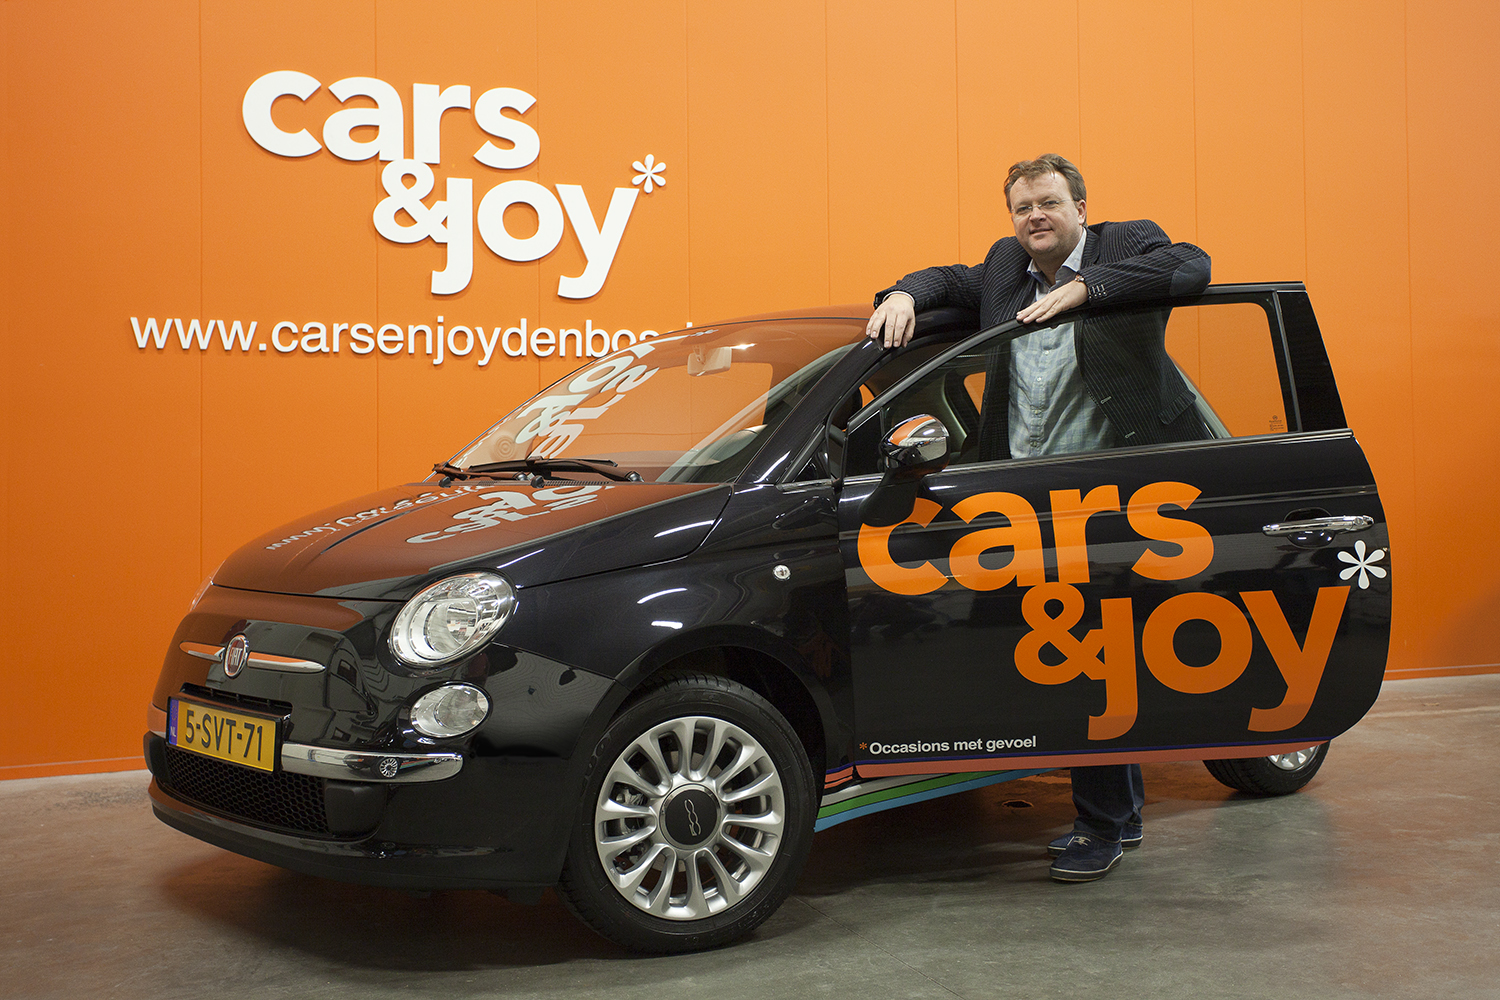 Cars & Joy, Den Bosch